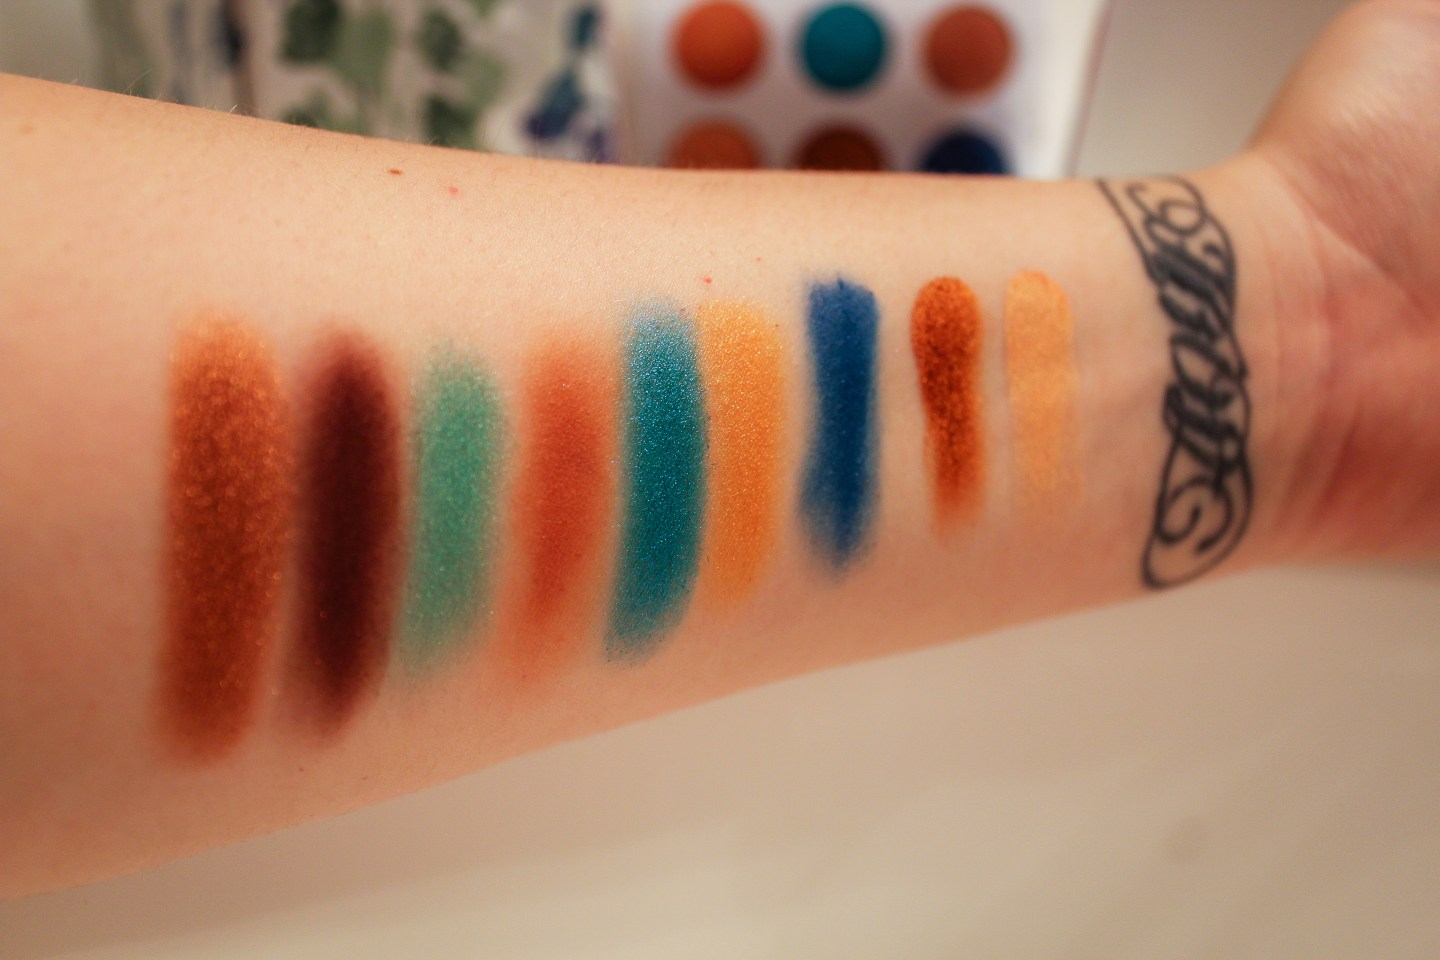 ColourPop Mar Palette Swatch.jpg